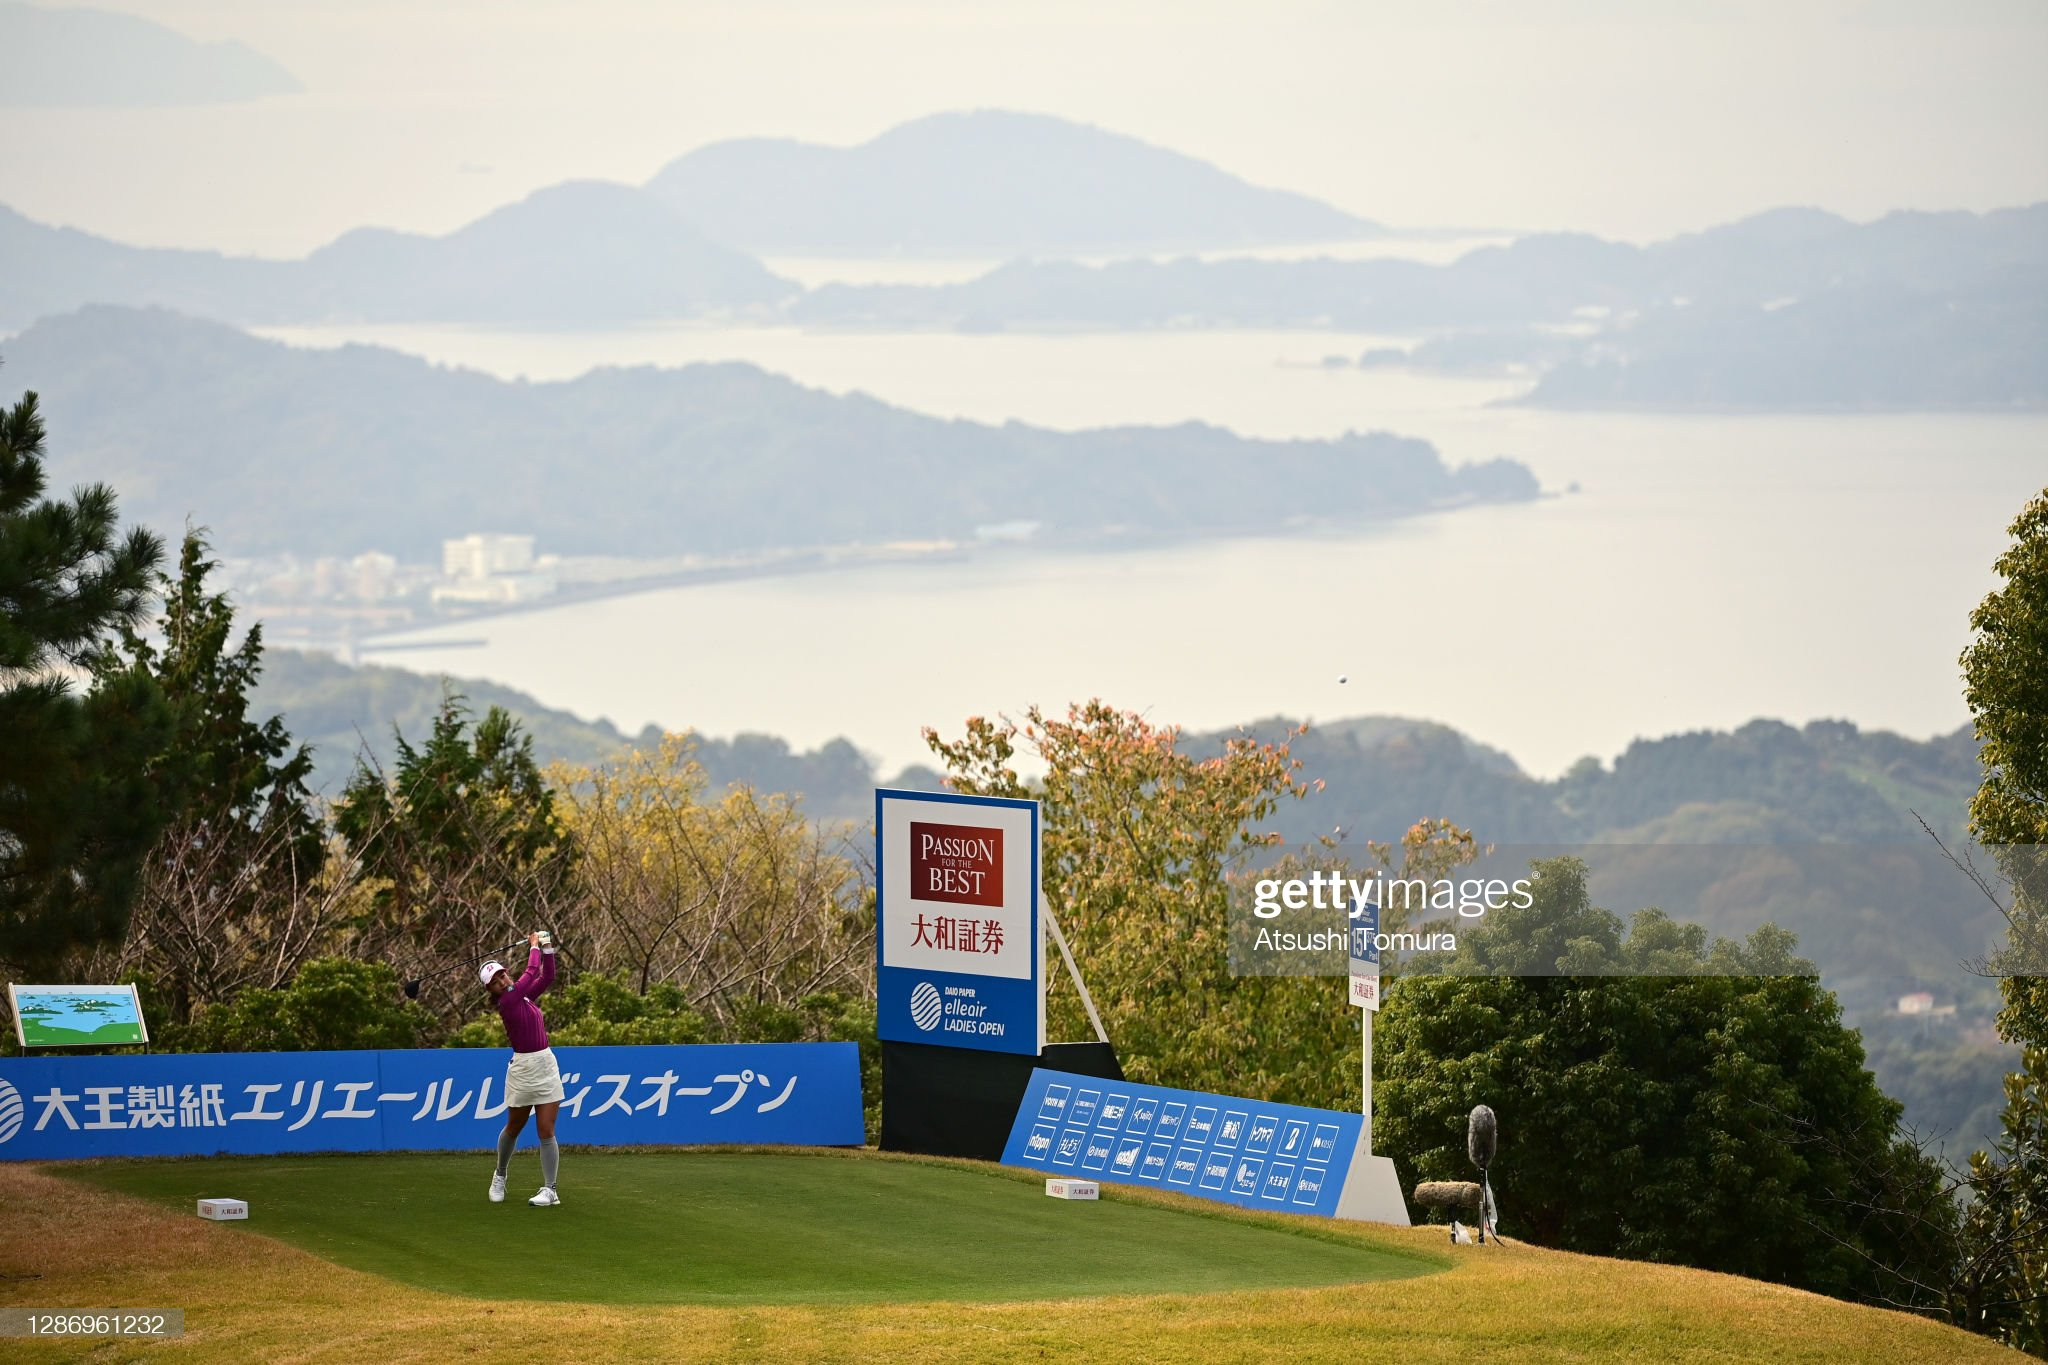 https://media.gettyimages.com/photos/rei-matsuda-of-japan-hits-her-tee-shot-on-the-15th-hole-during-the-picture-id1286961232?s=2048x2048